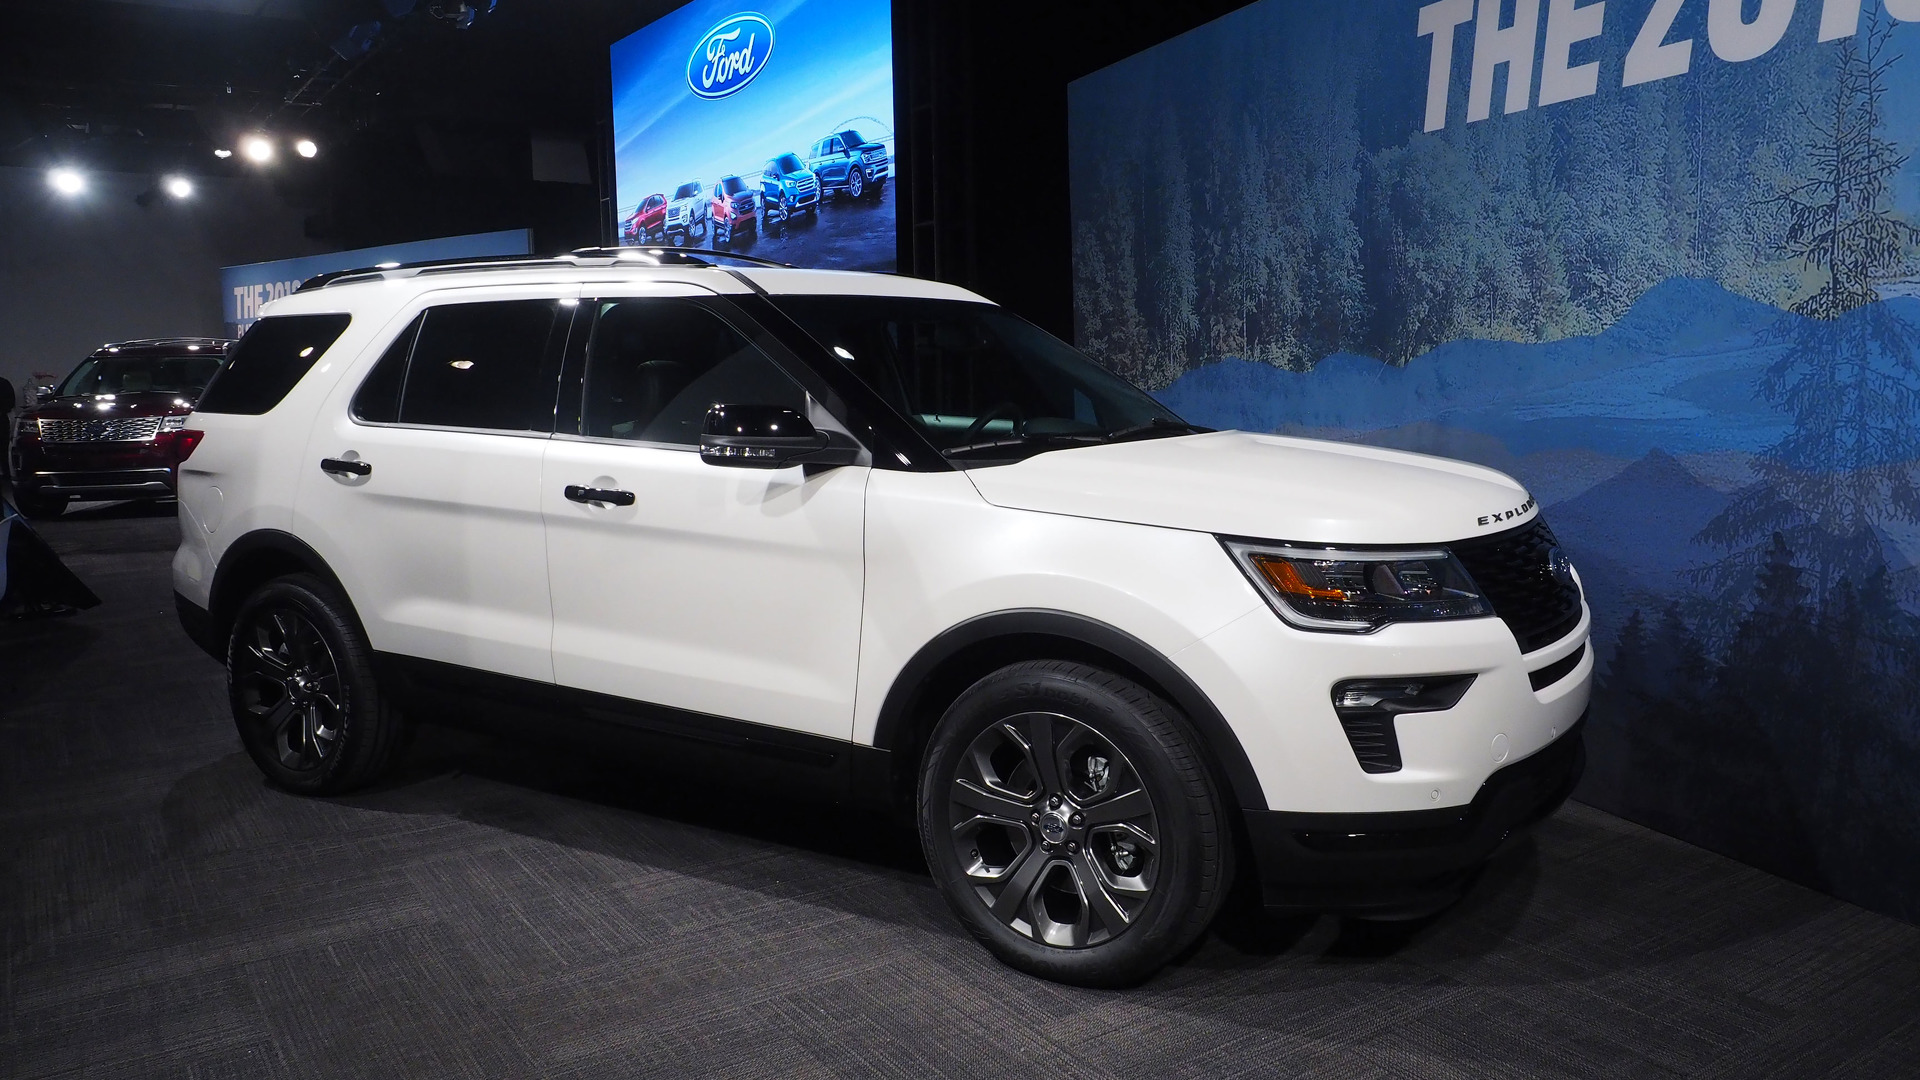 2018 ford explorer updates include more tech safety options